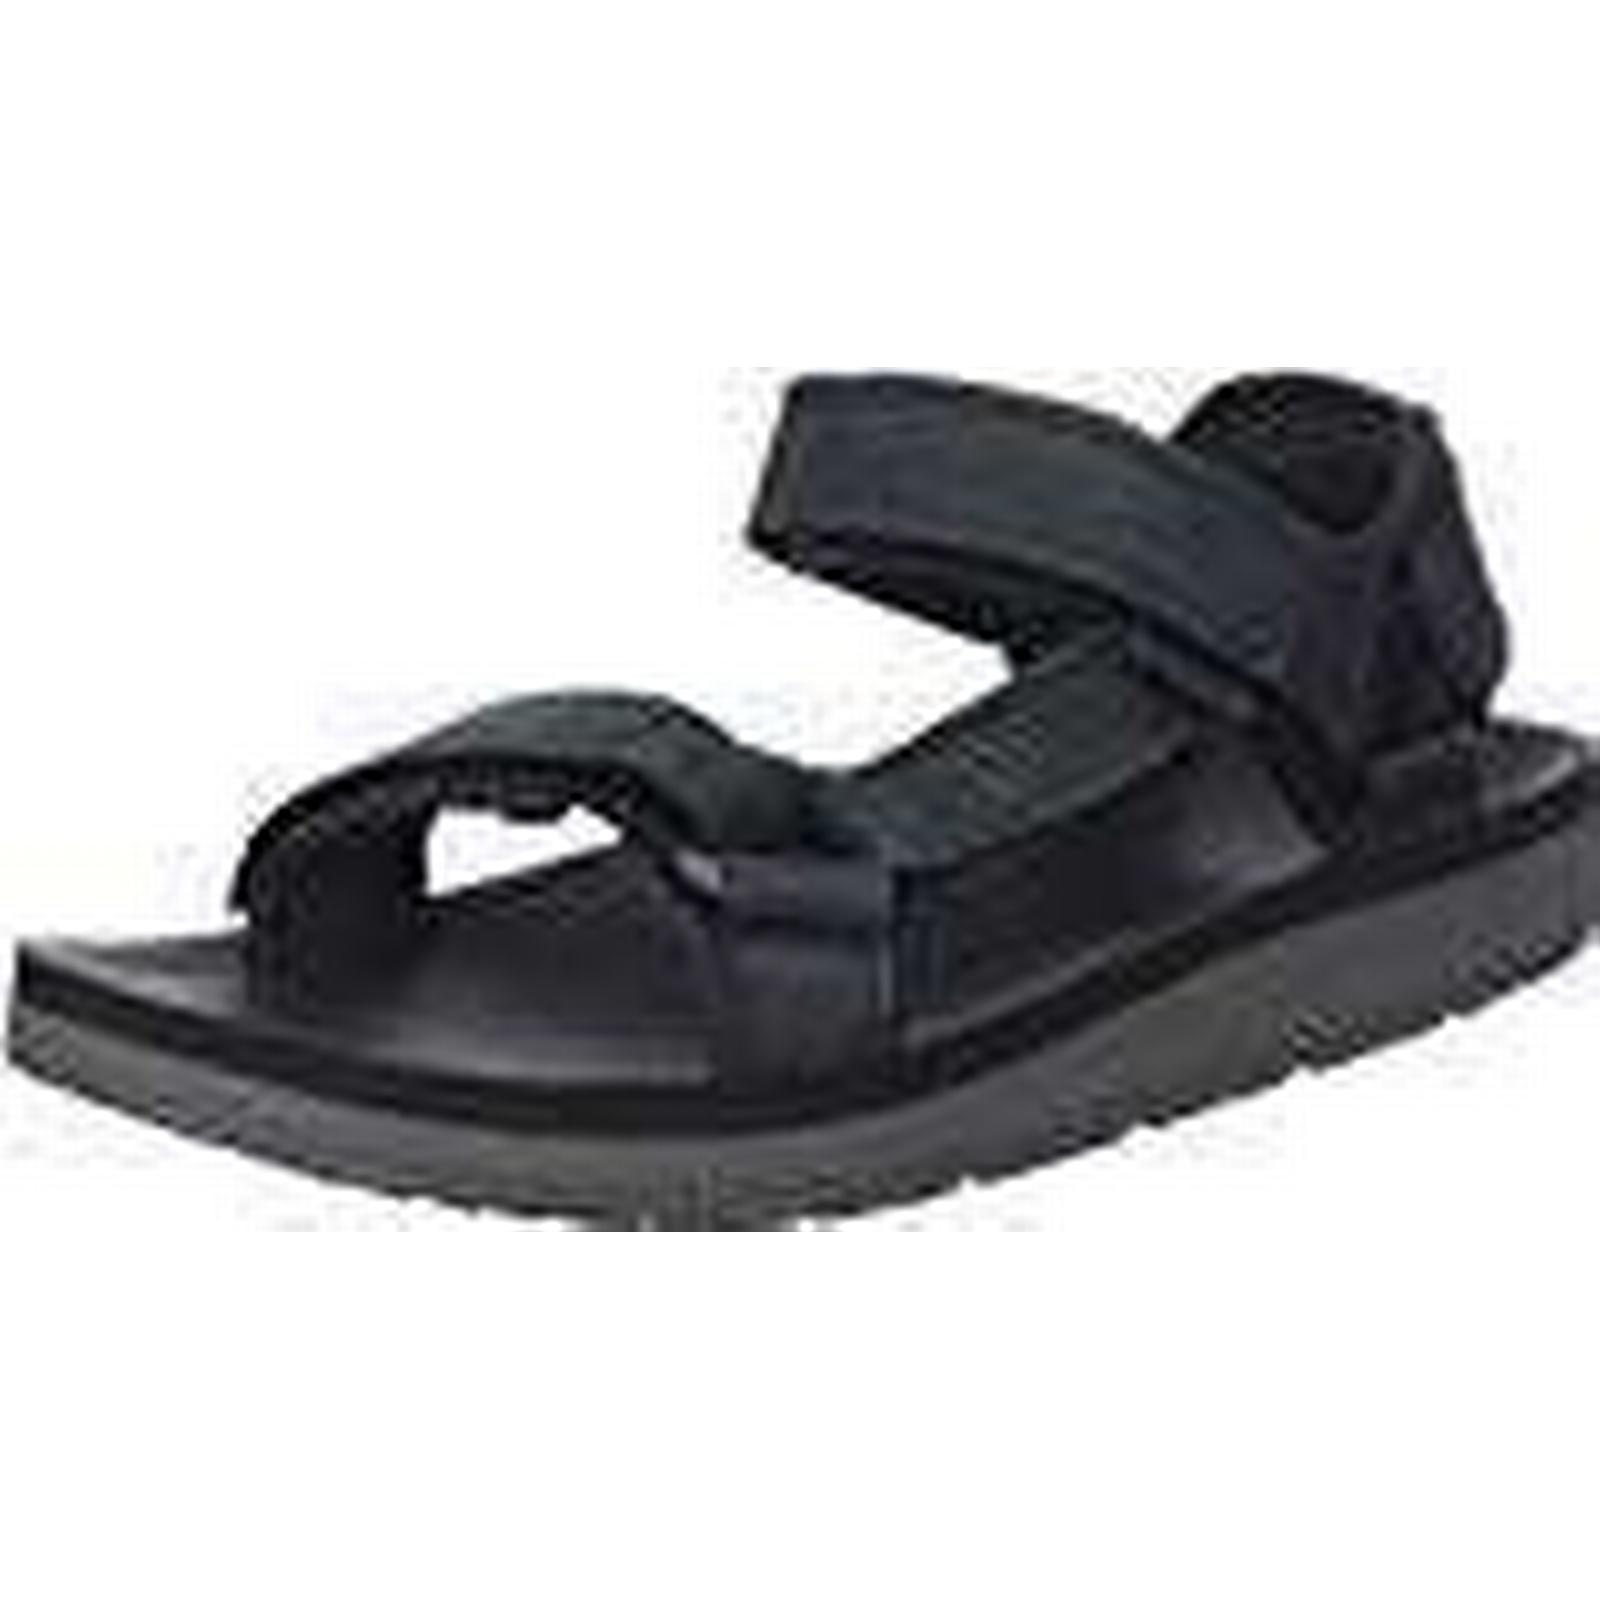 Teva Men's Original Universal Outdoor Premier Leather Sports and Outdoor Universal Lifestyle Sandal, Black, 10 UK (44.5 EU) b72ec5